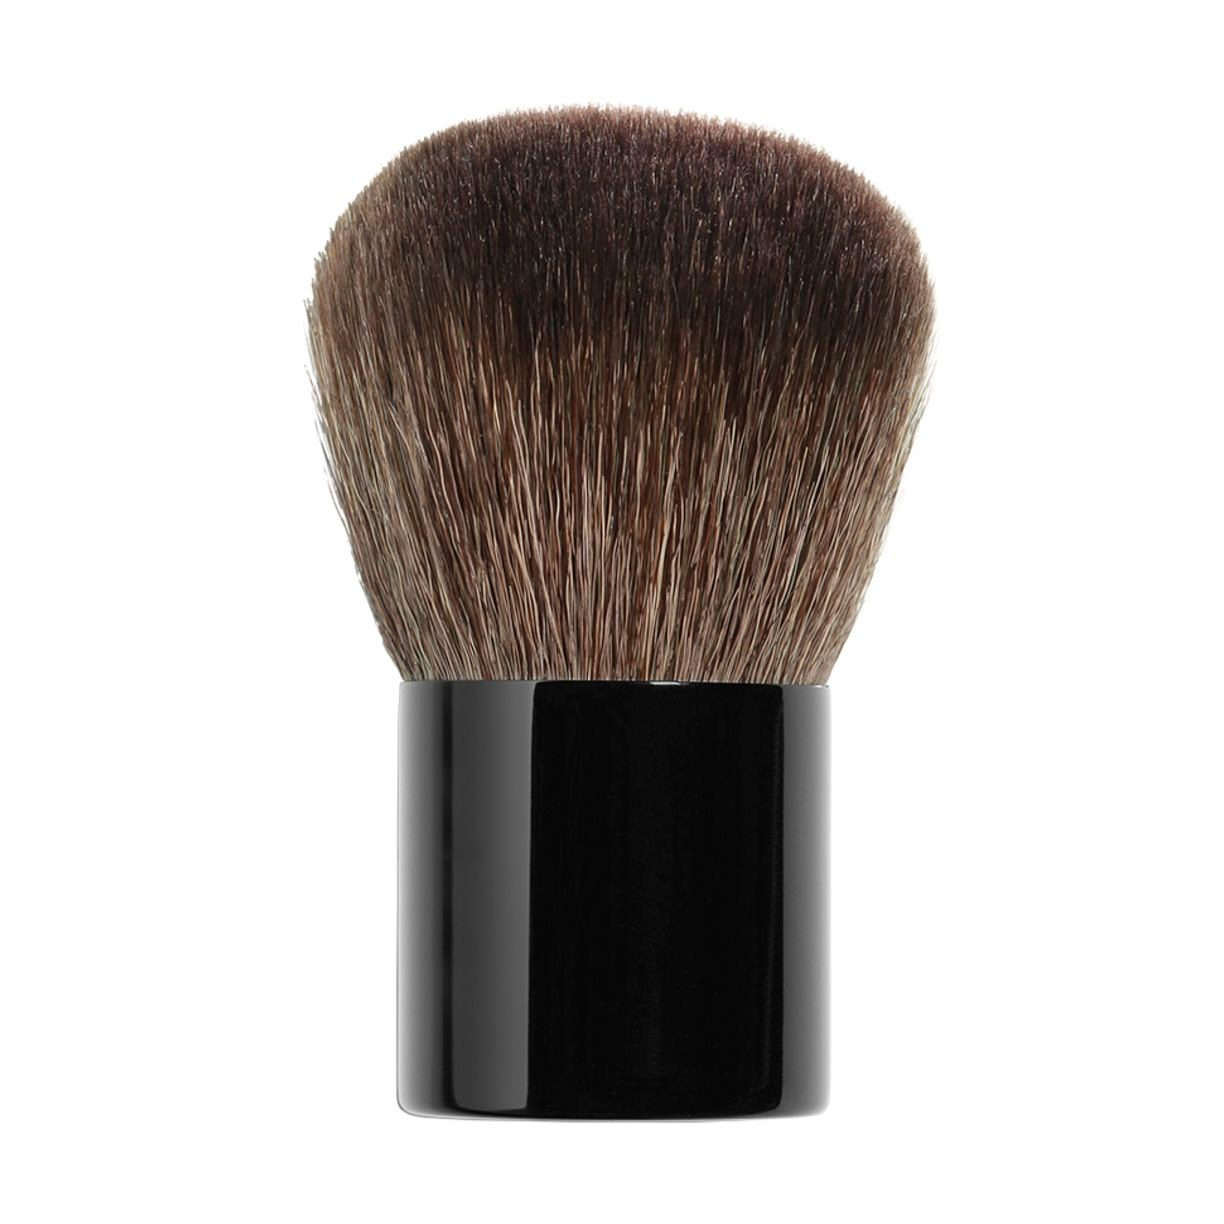 63deb286d4 Makeup Brushes and Accessories CHANEL : Complexion Brushes - Eye...